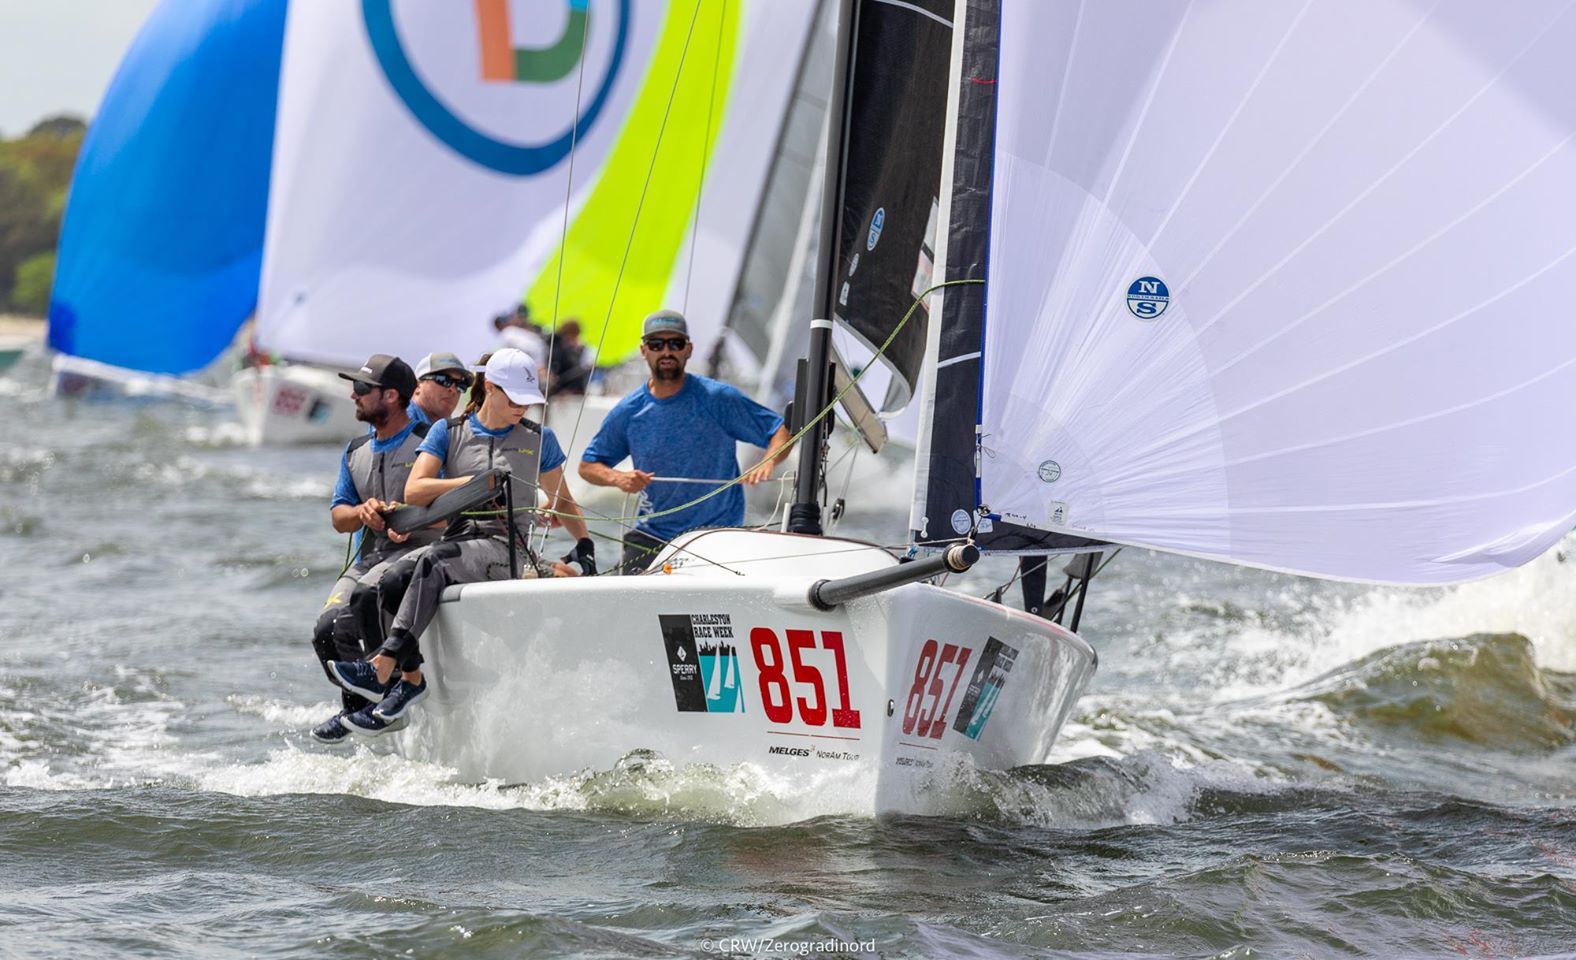 Melges 24 stalwart Bruce Ayres and his team on Monsoon USA851, were leading the regatta until the final day and finished second, tied in points with the winner. Photo: Zerogradinord / Mauro Melandri